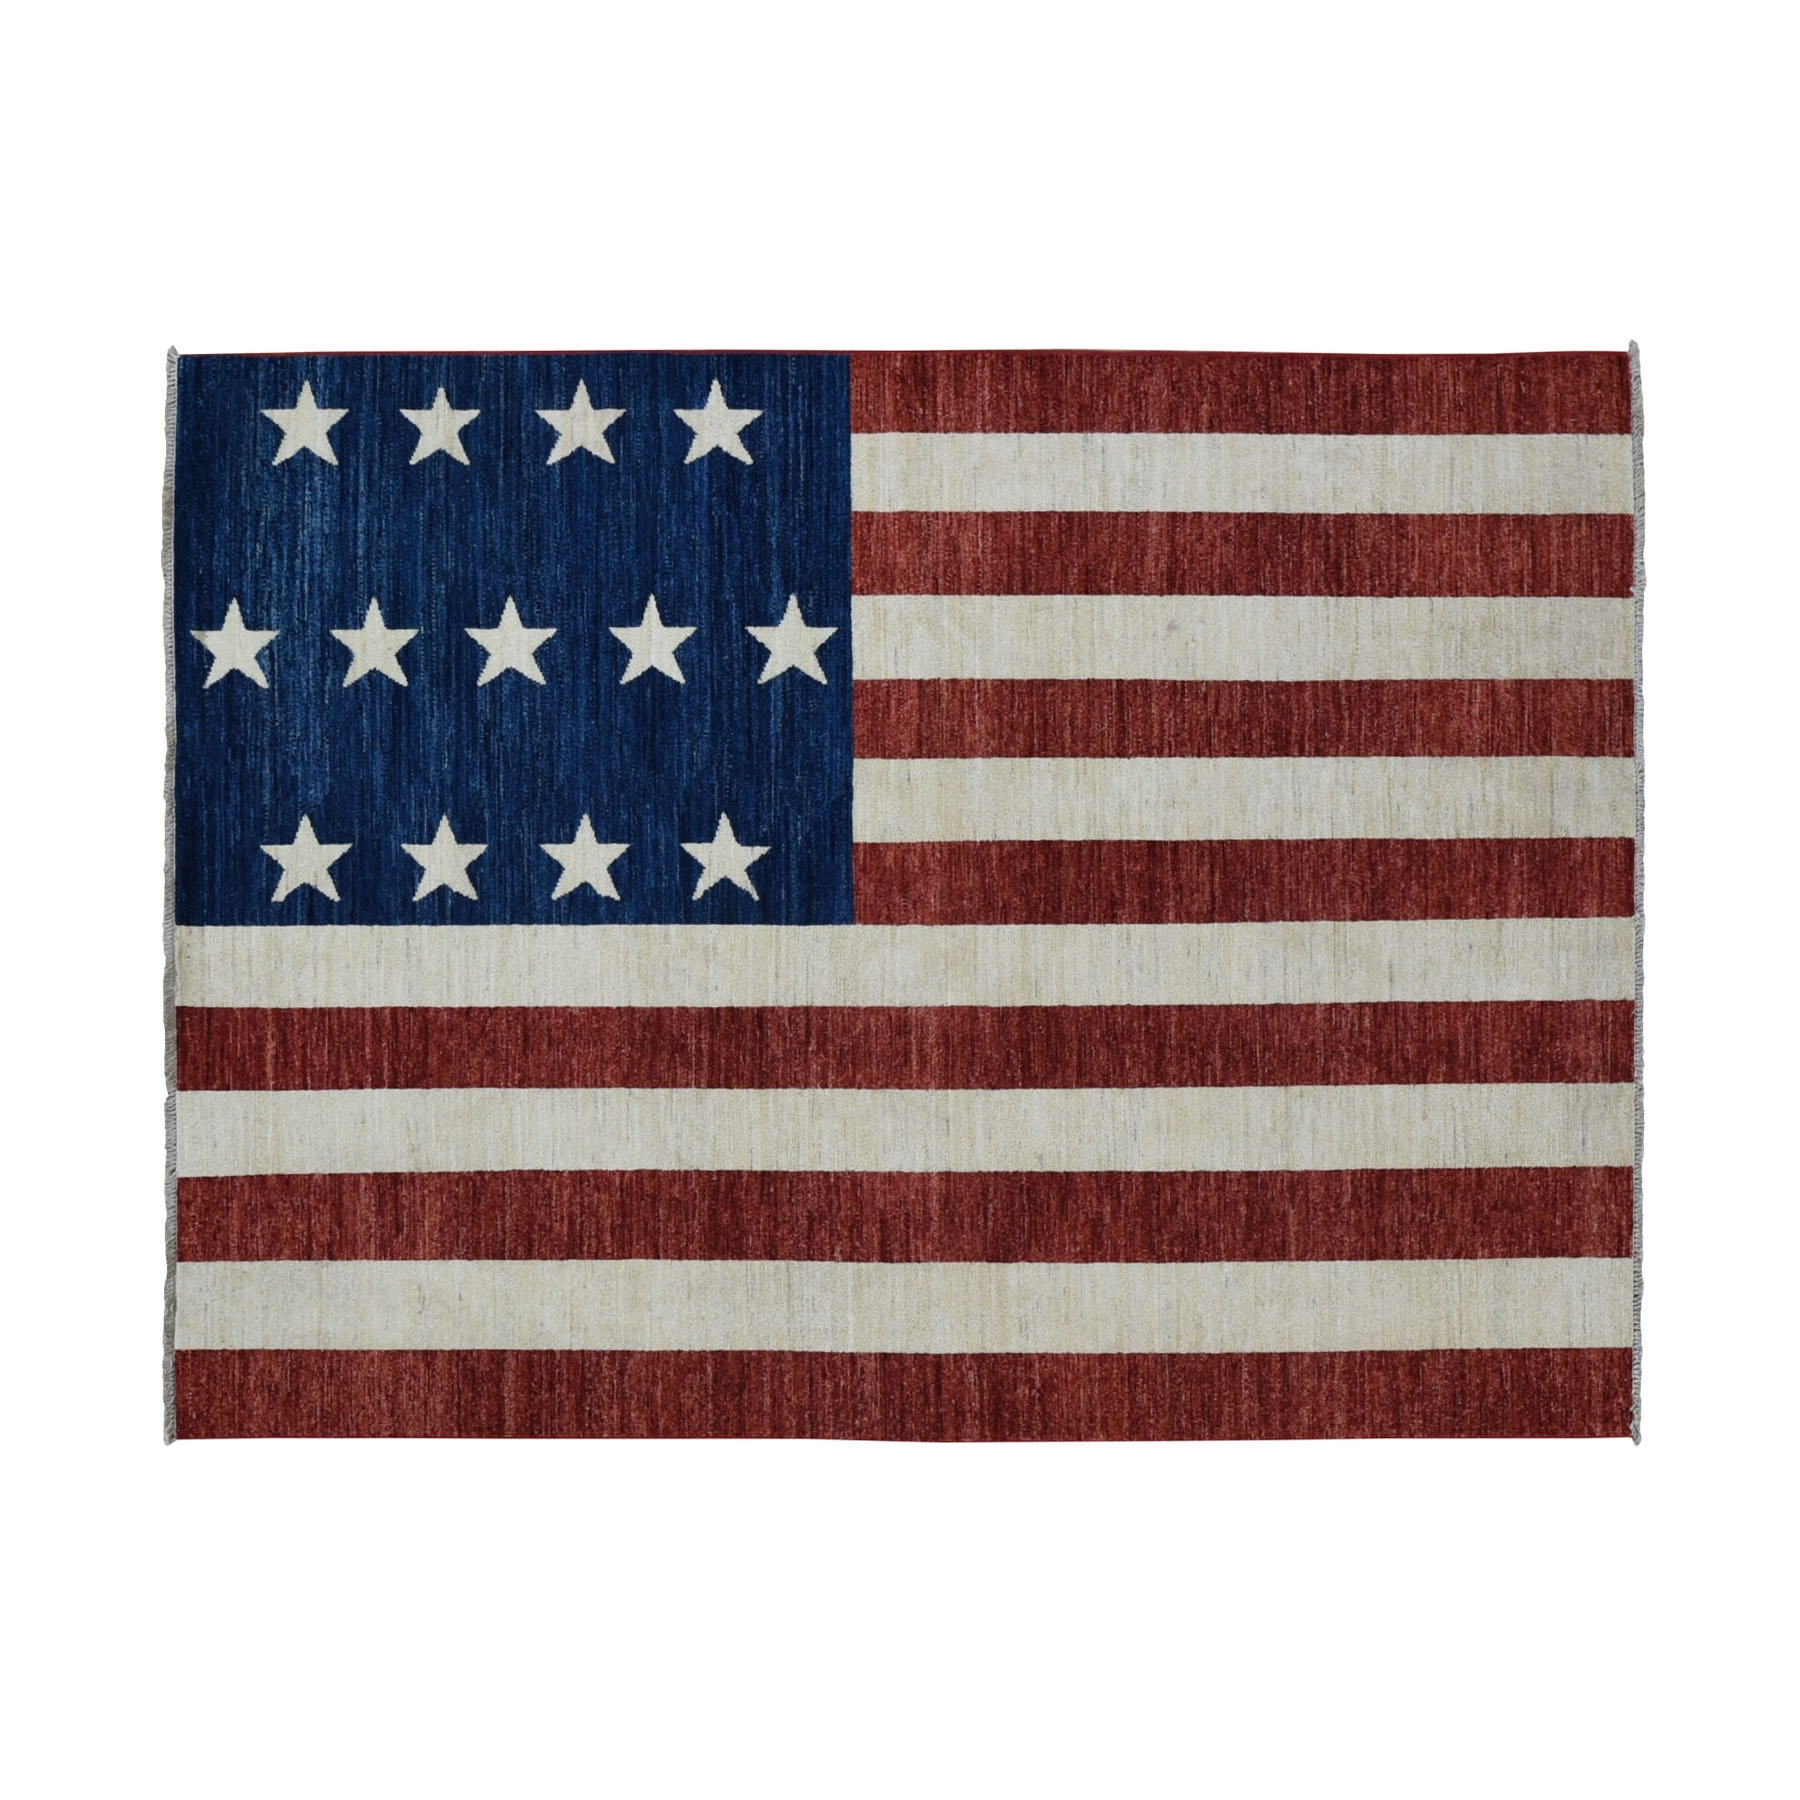 5'X7' Pure Wool Vintage Look American History Hand-Knotted Flag Design Wall Hanging Rug moad906a